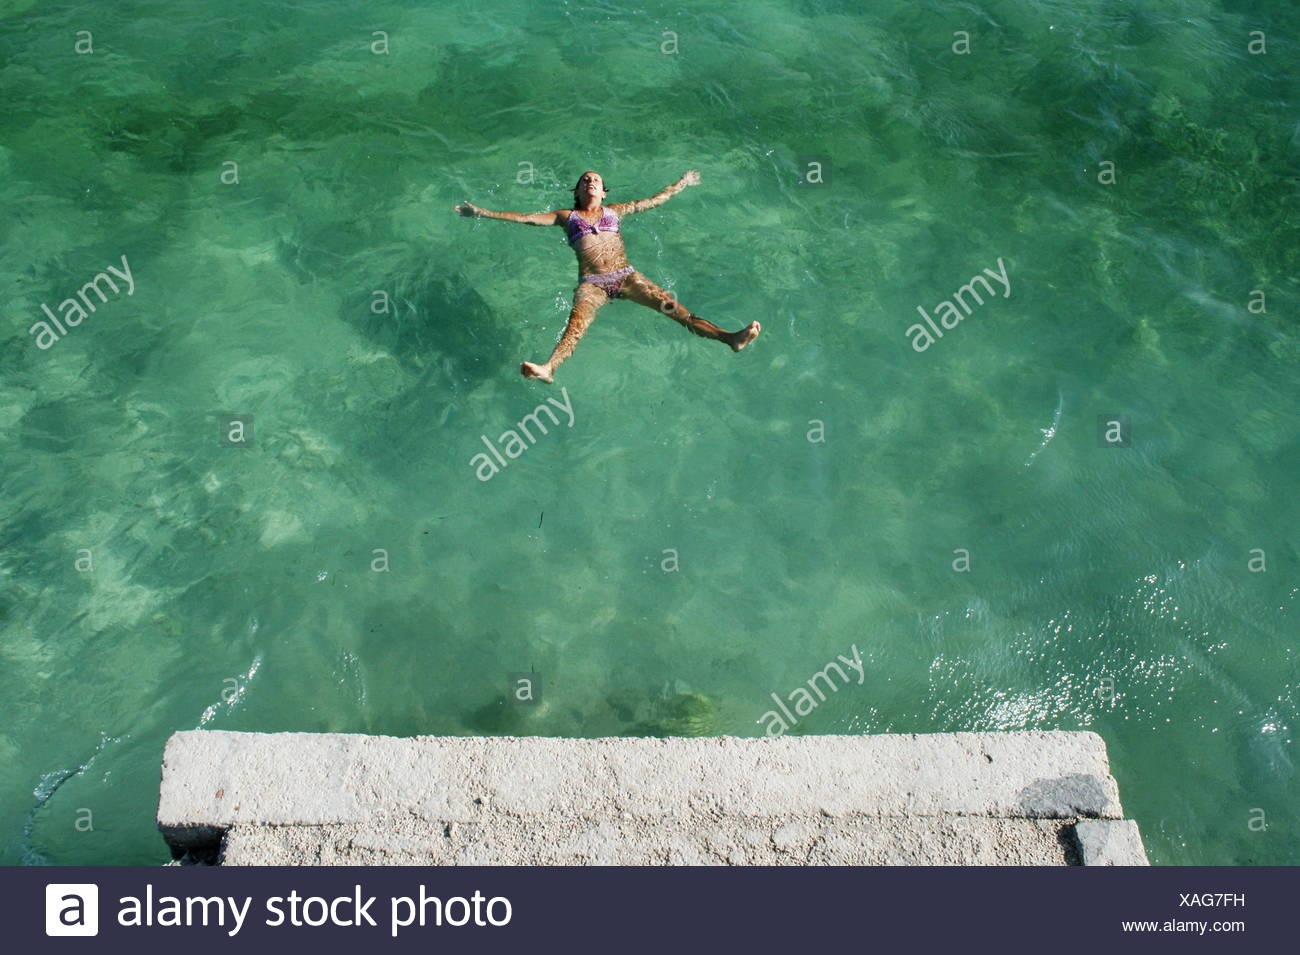 Croatia, Dalmatia, Trogir, Mid-adult woman floating in green sea - Stock Image